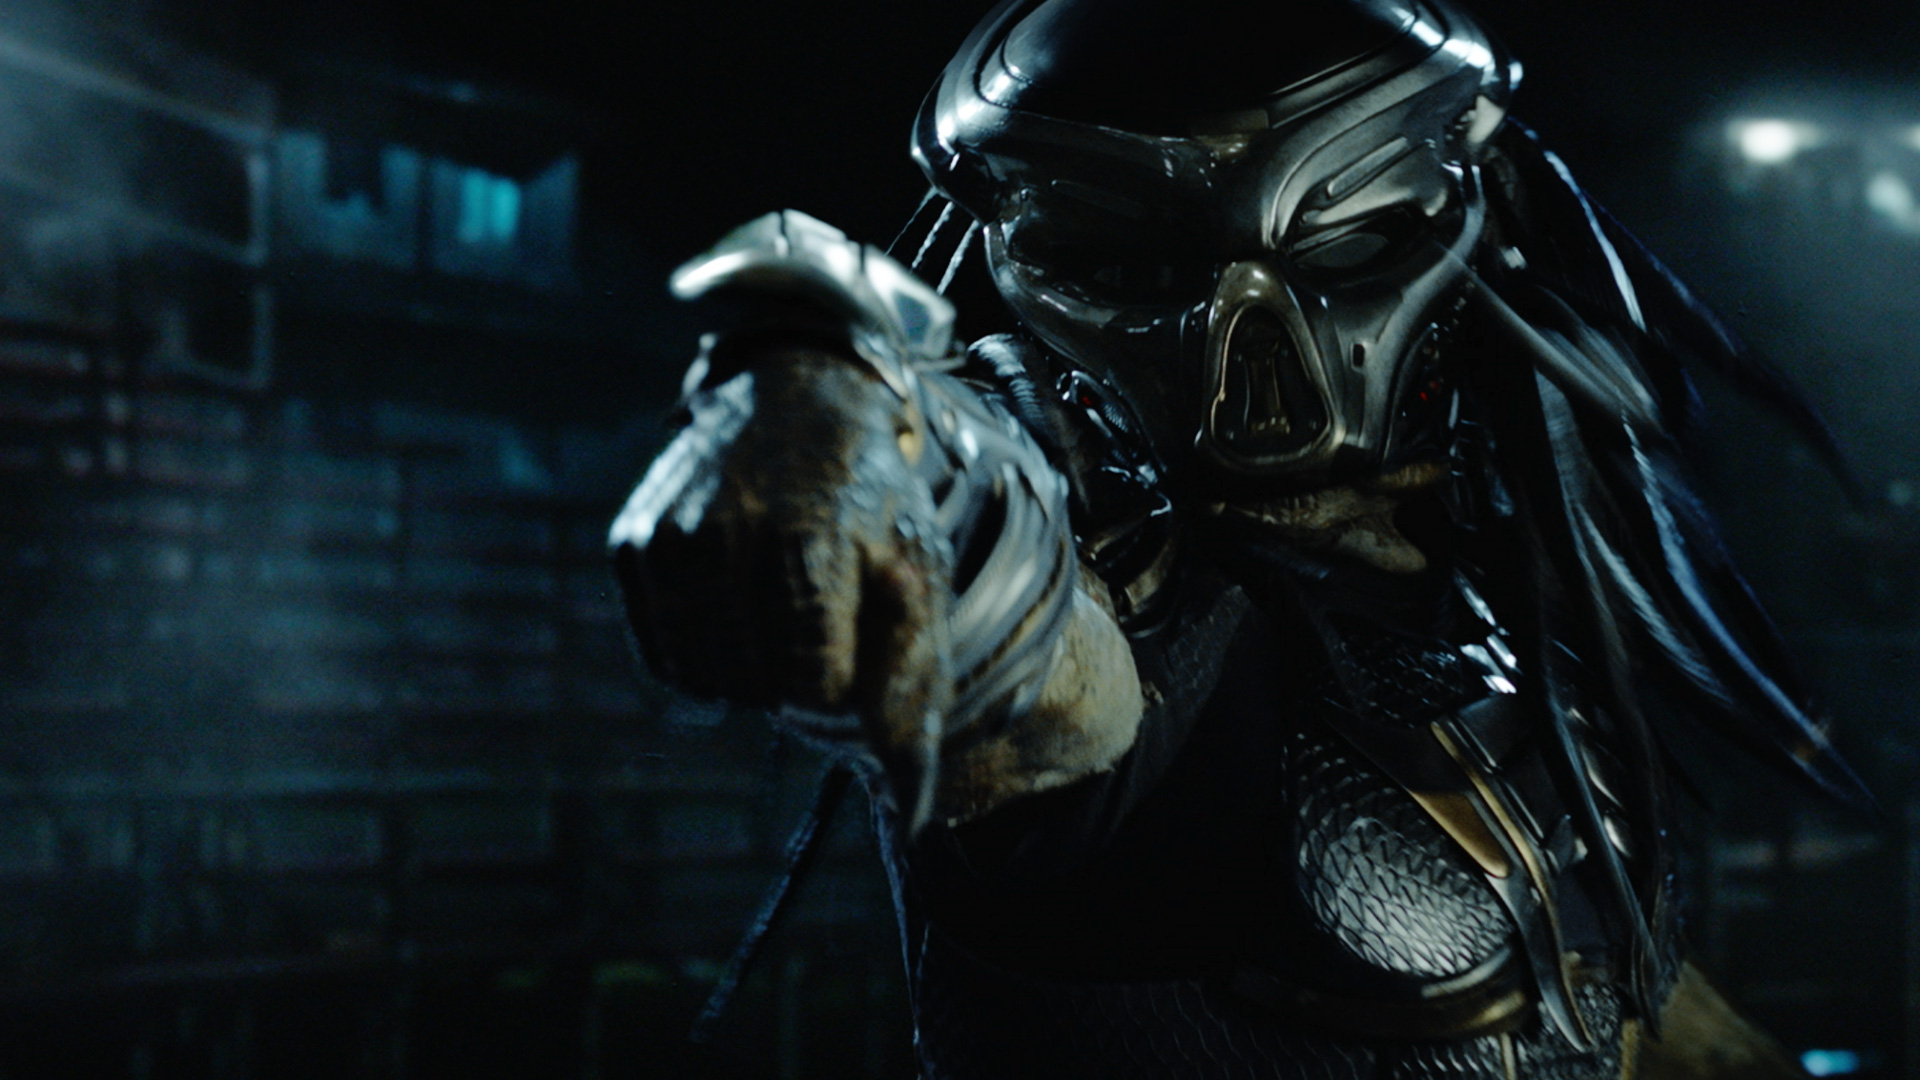 the predator movie 2018, hd movies, 4k wallpapers, images